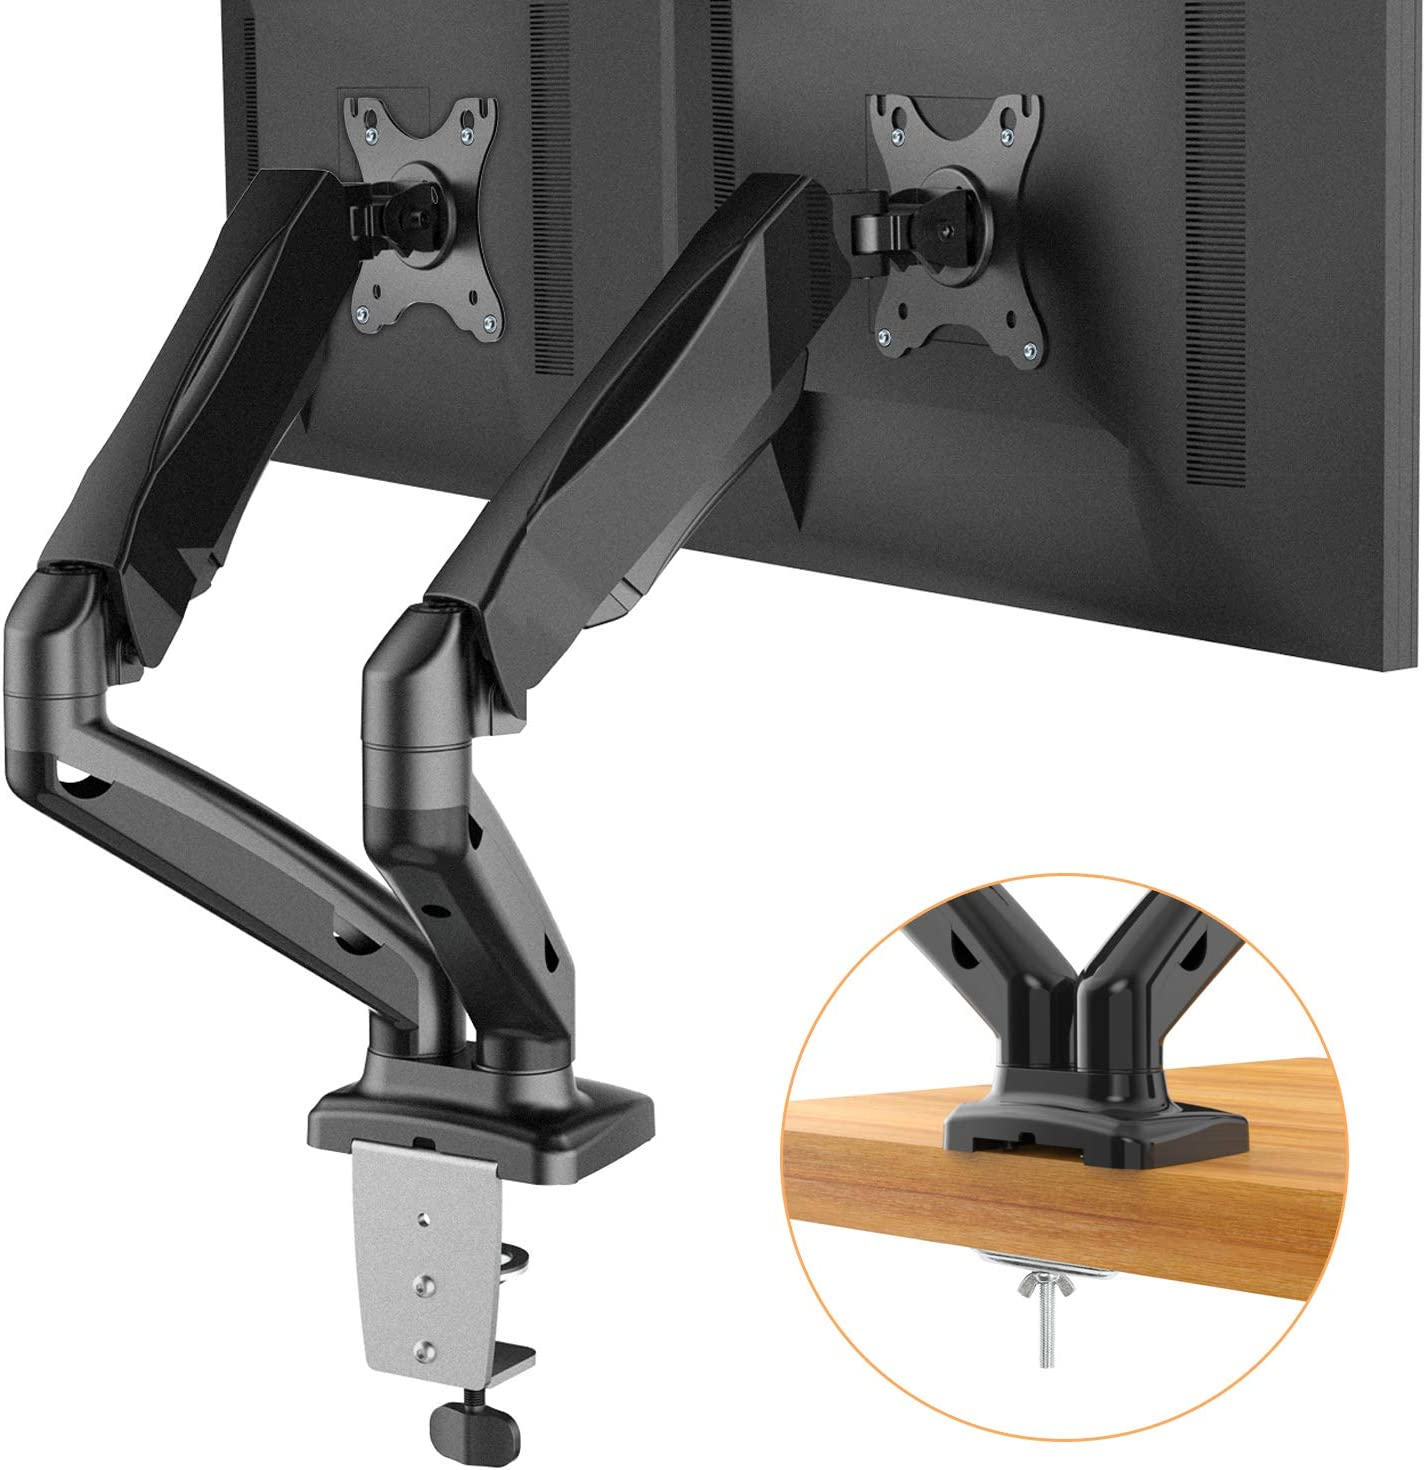 Dual Arm Monitor Stand - Adjustable Gas Spring Computer Desk Mount VESA Bracket with C Clamp/Grommet Mounting Base for 13 to 27 Inch Computer Screens - Each Arm Holds up to 14.3lbs